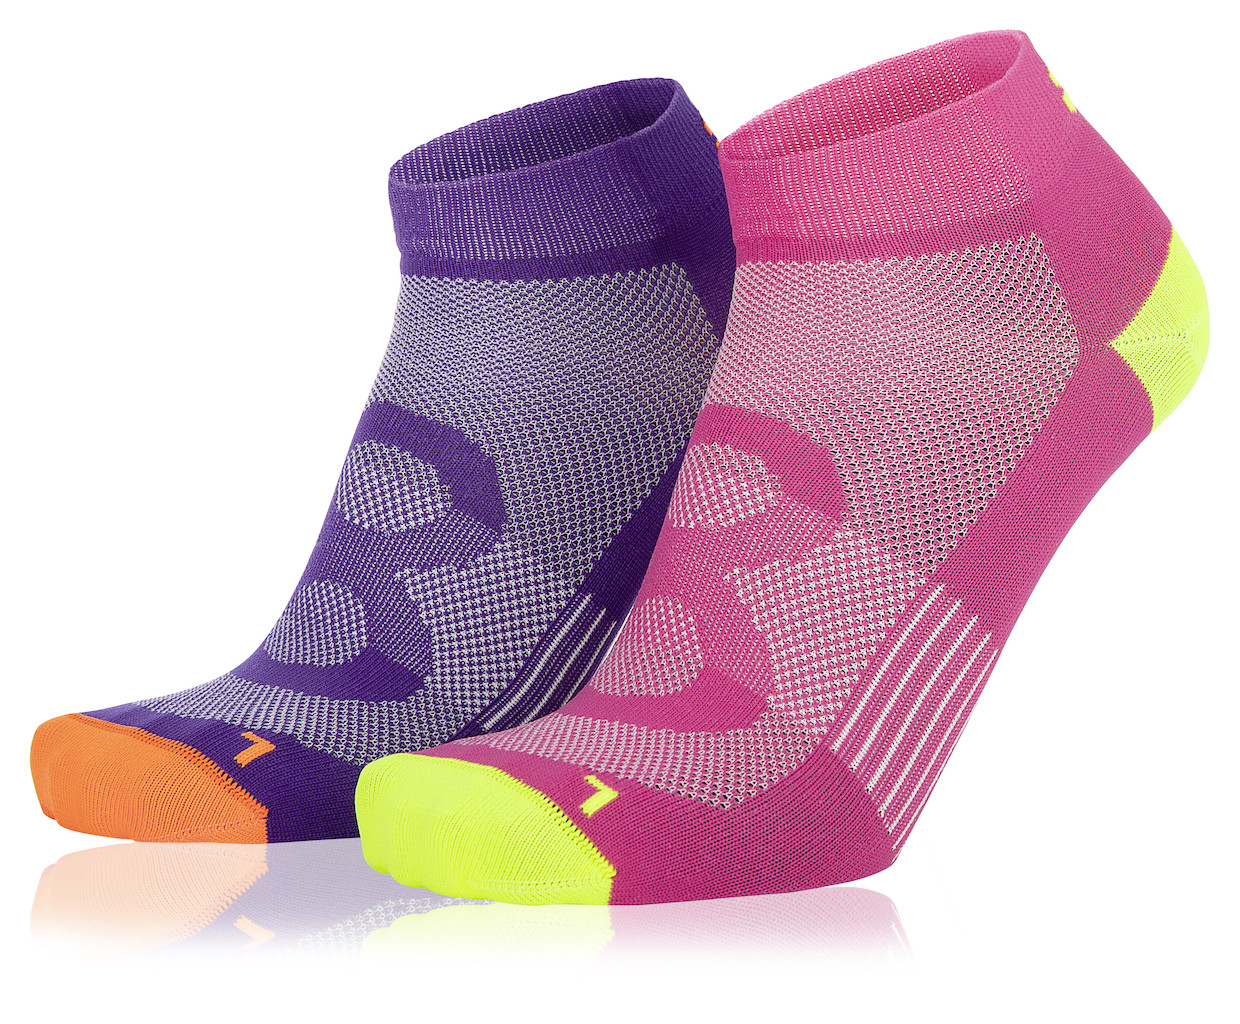 Eightsox Color 2 - 2 Paar